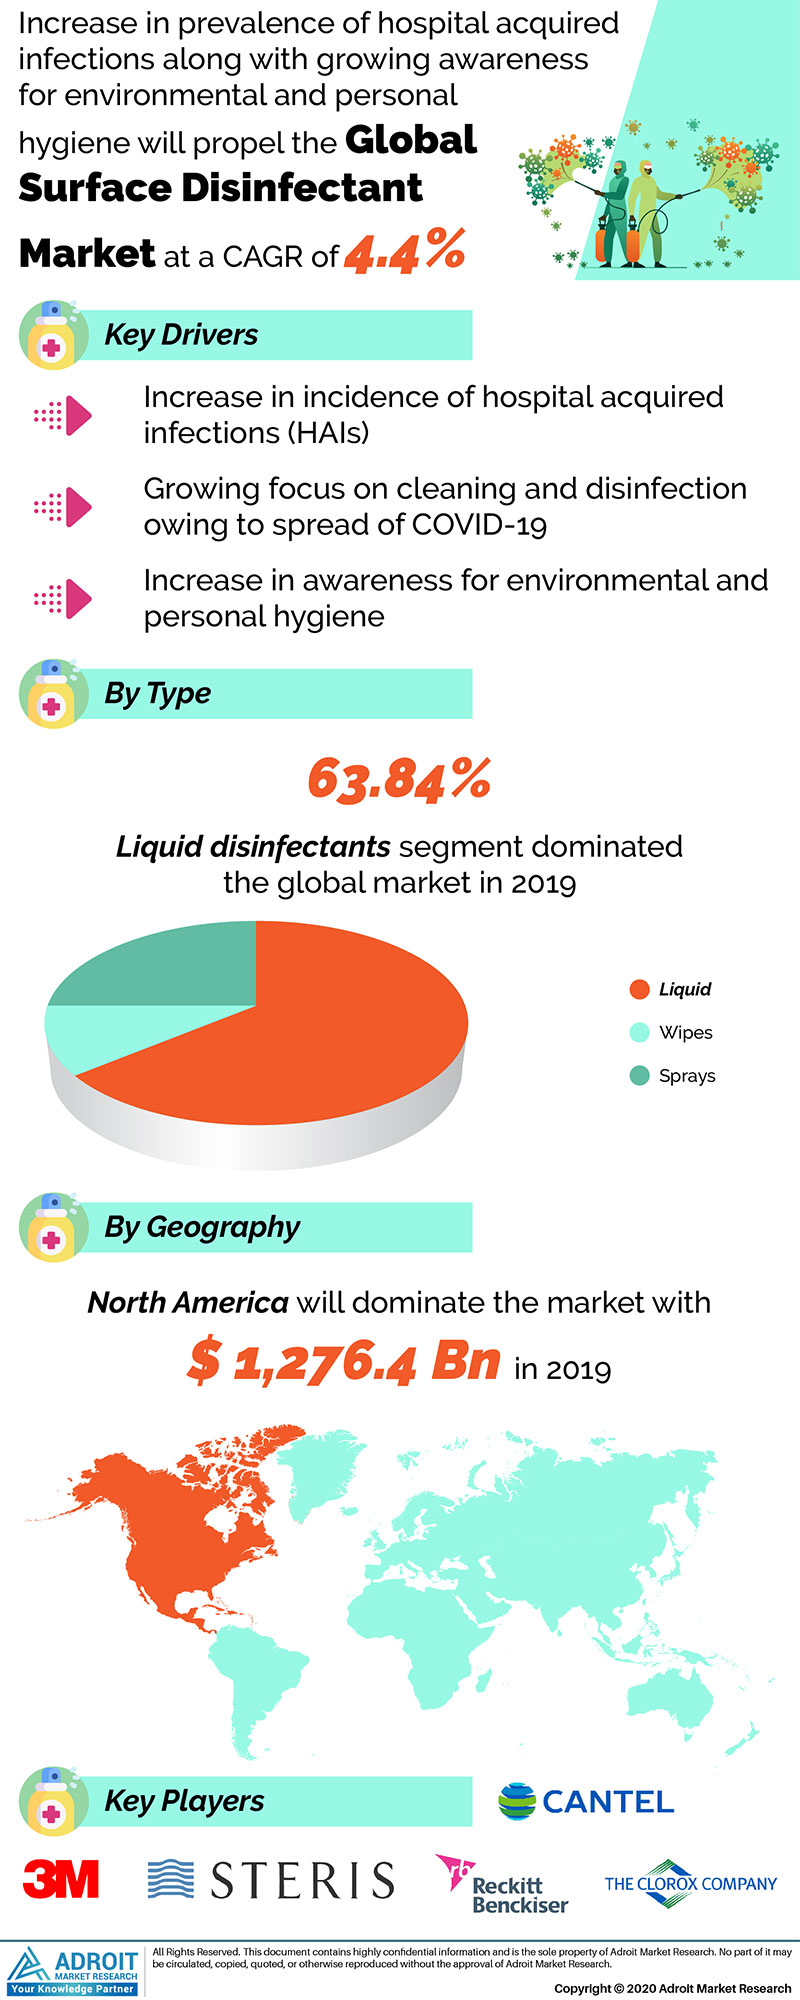 Global Surface Disinfectant Market Size 2017 By Type, Device, Region and Forecast 2018 to 2025